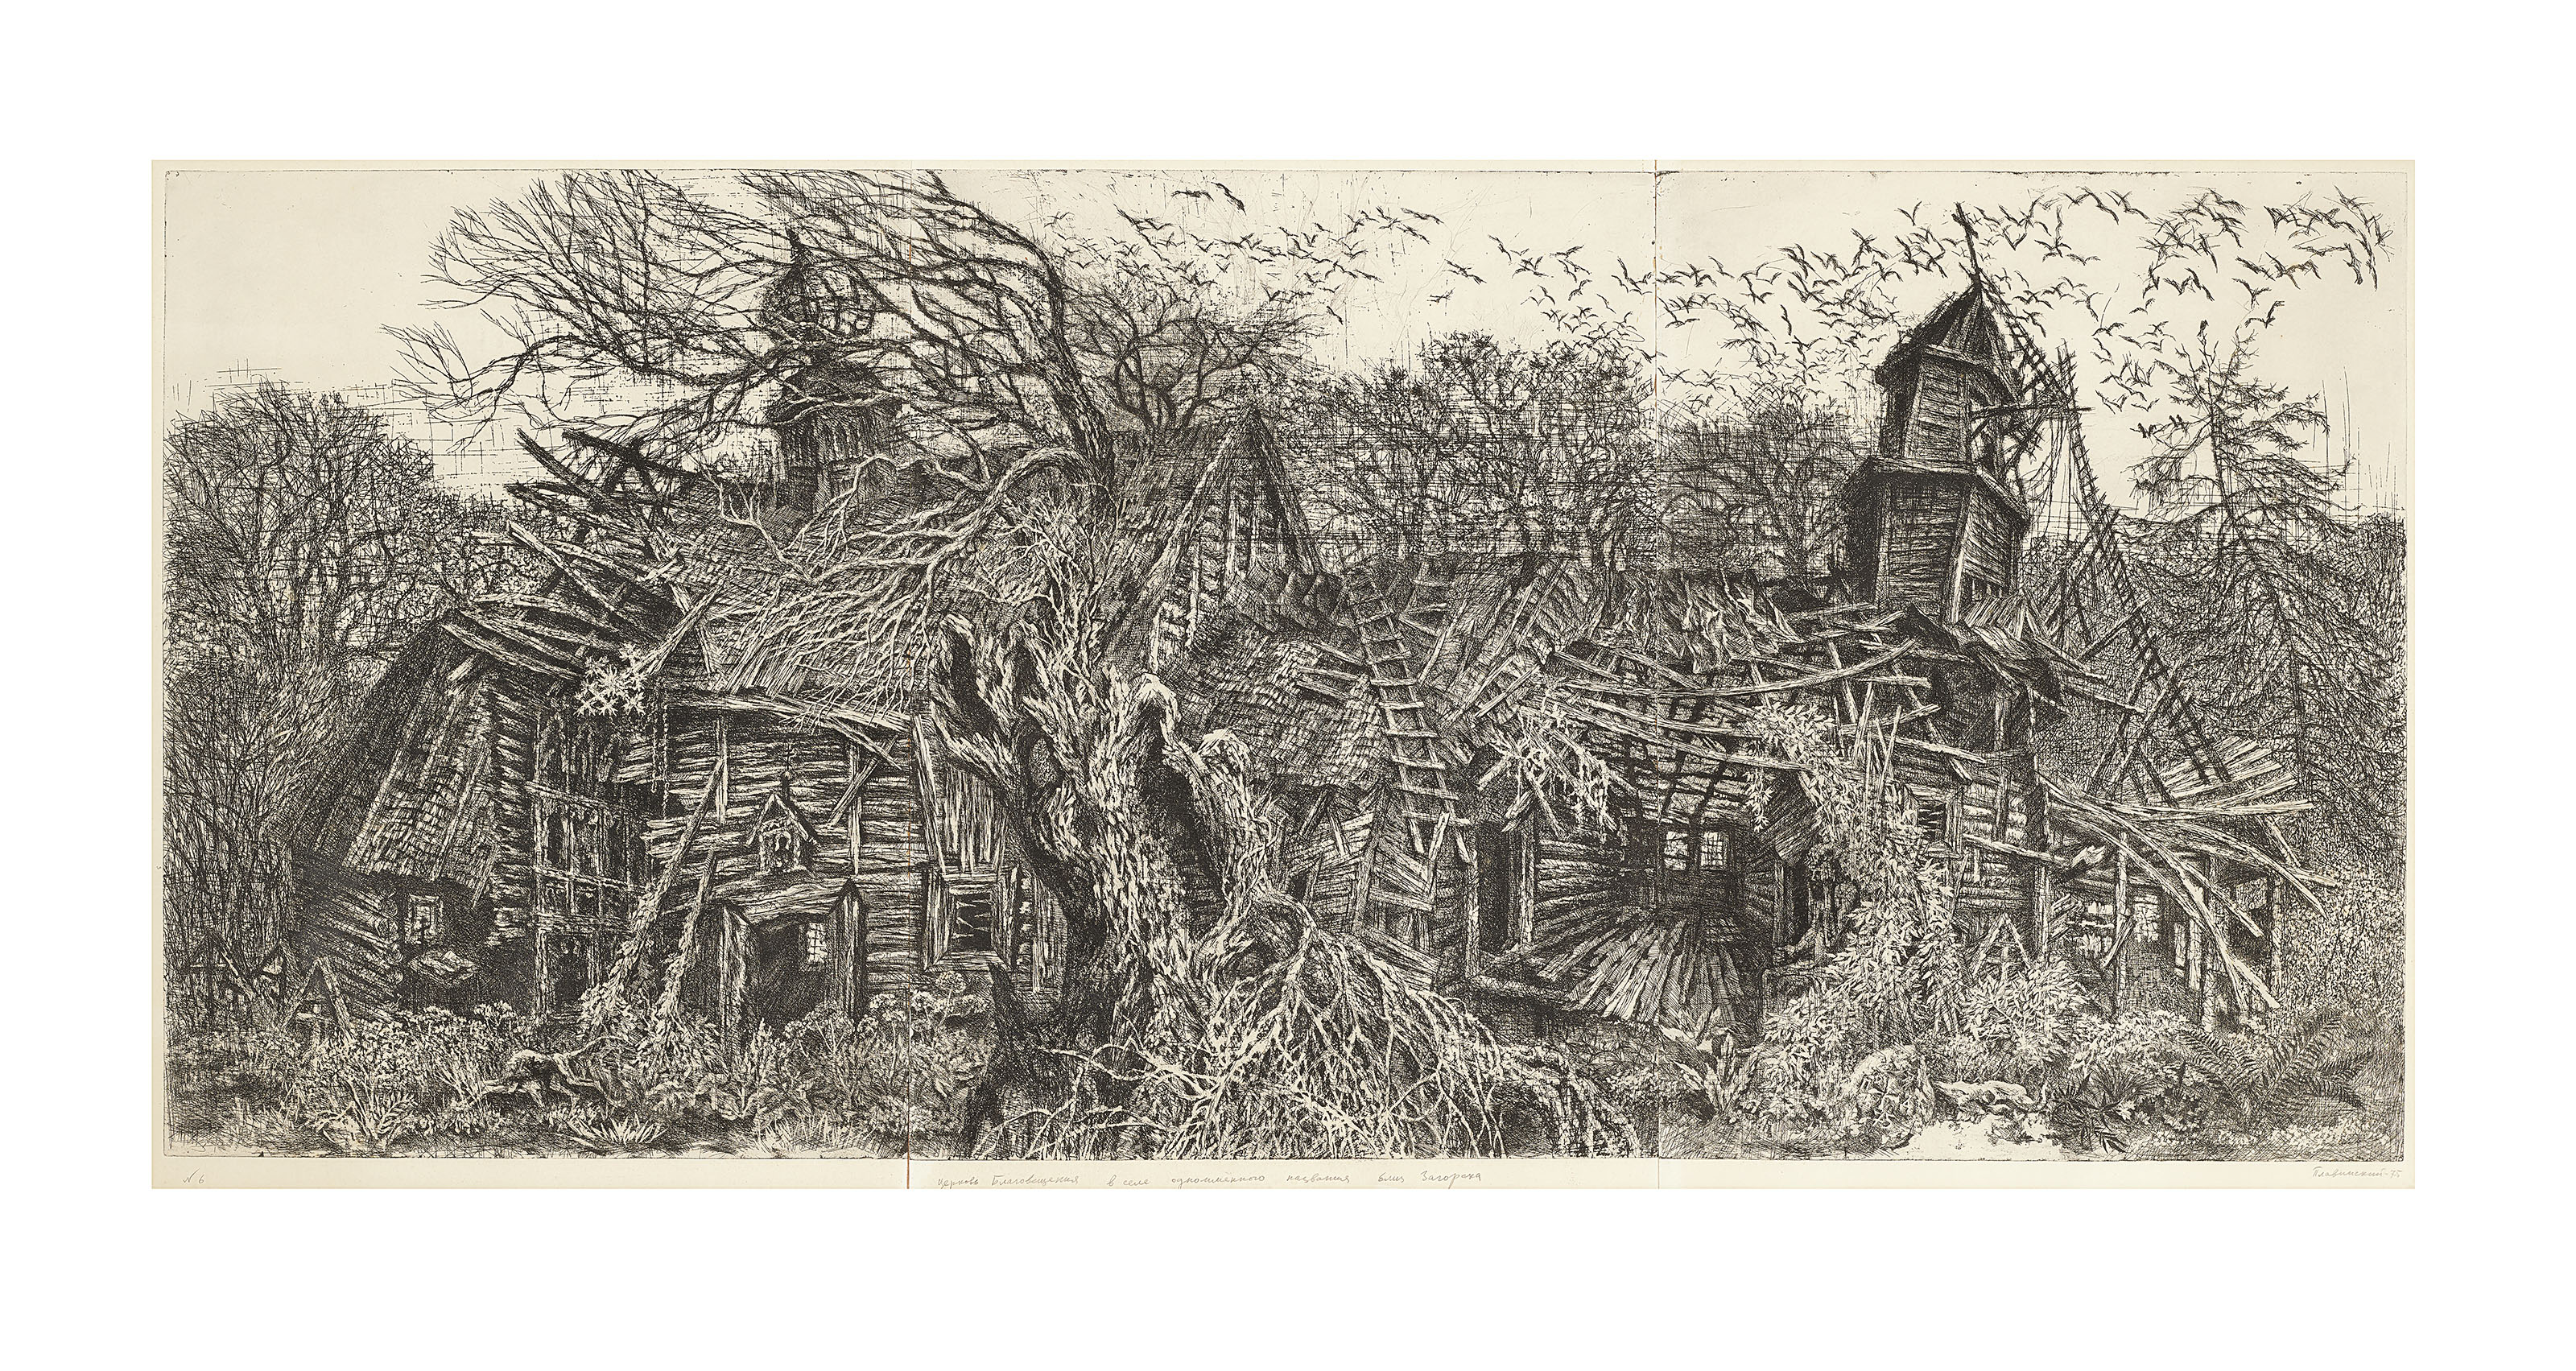 https://www.christies.com/img/LotImages/2019/CKS/2019_CKS_17188_0096_000(dmitri_plavinsky_abandoned_church_old_knight_scroll_and_four_etchings010106).jpg?mode=max